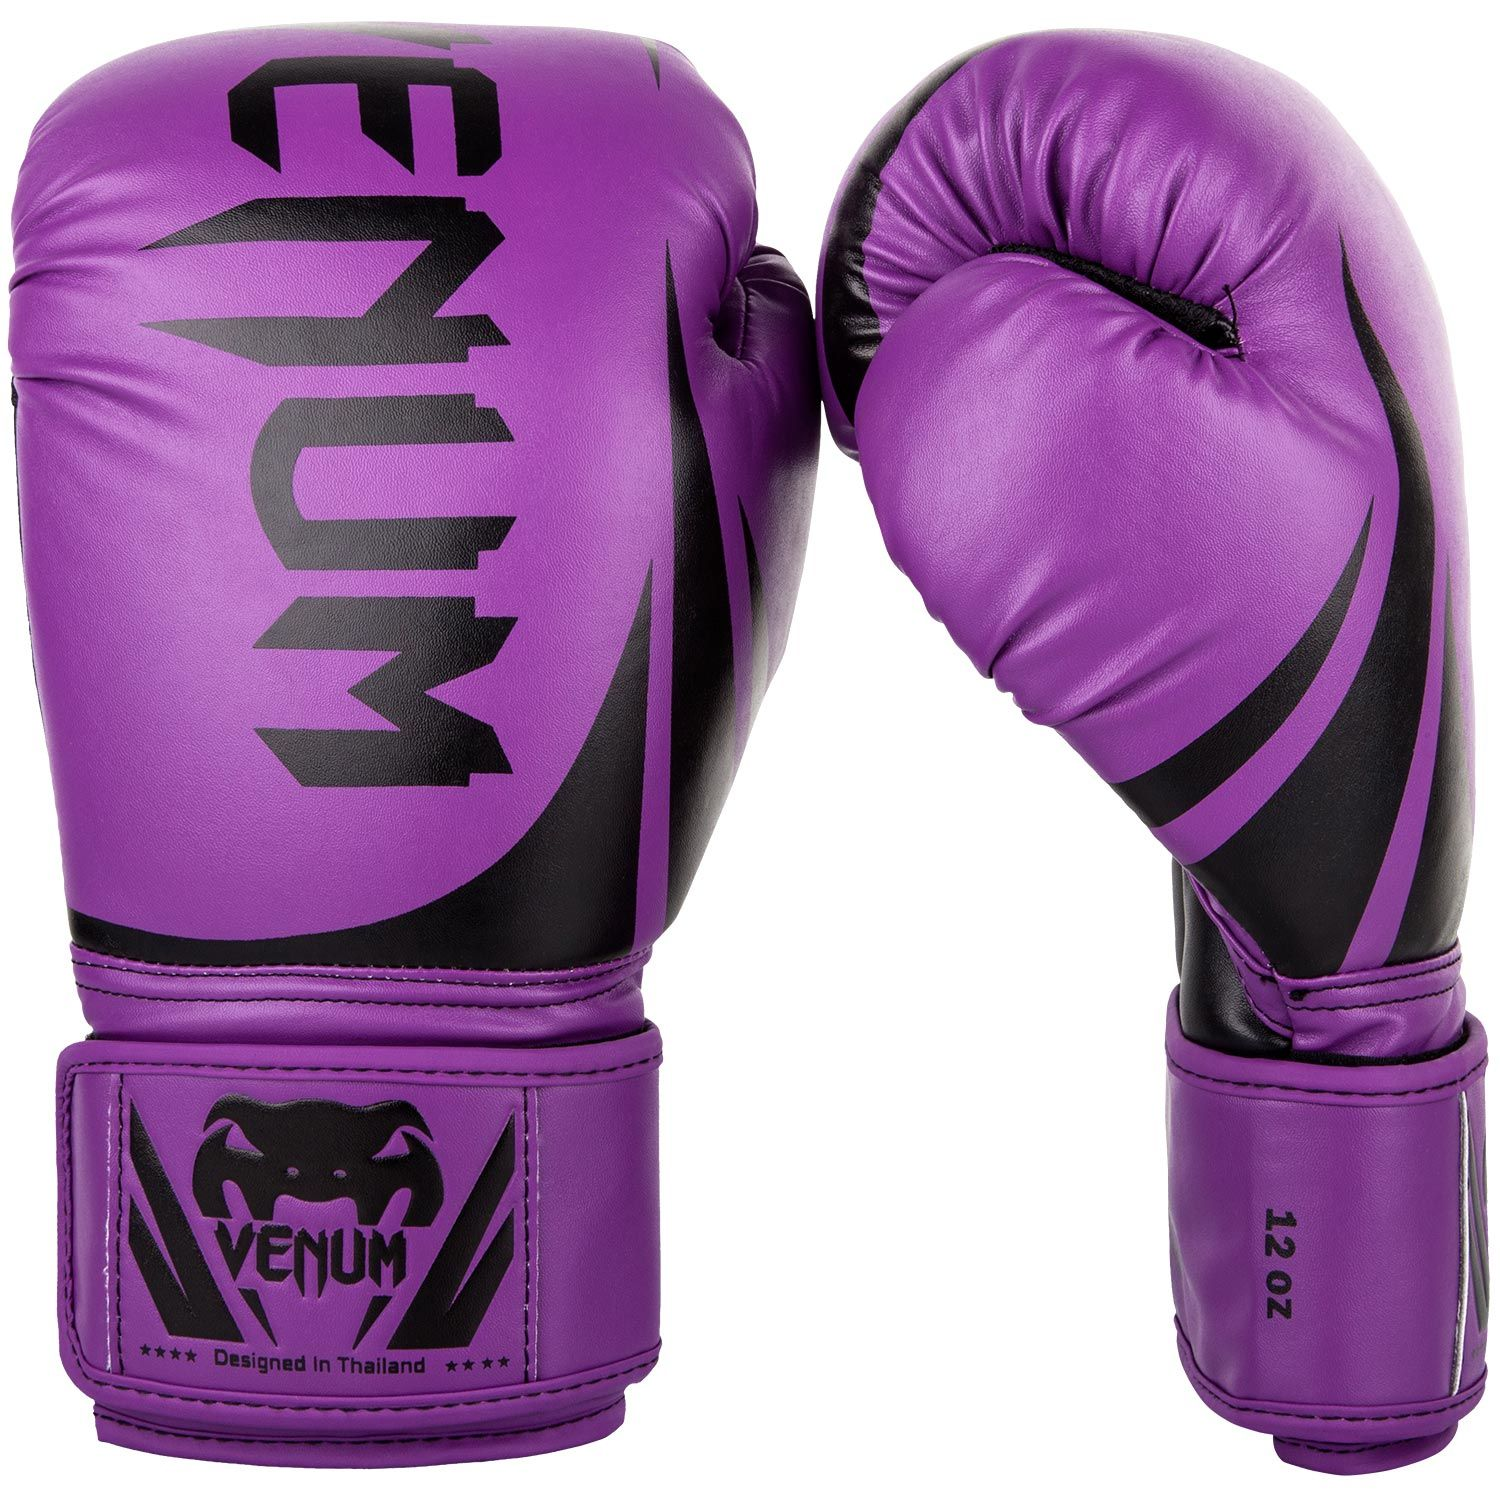 Venum Challenger 2.0 Boxing Gloves - Purple/Black